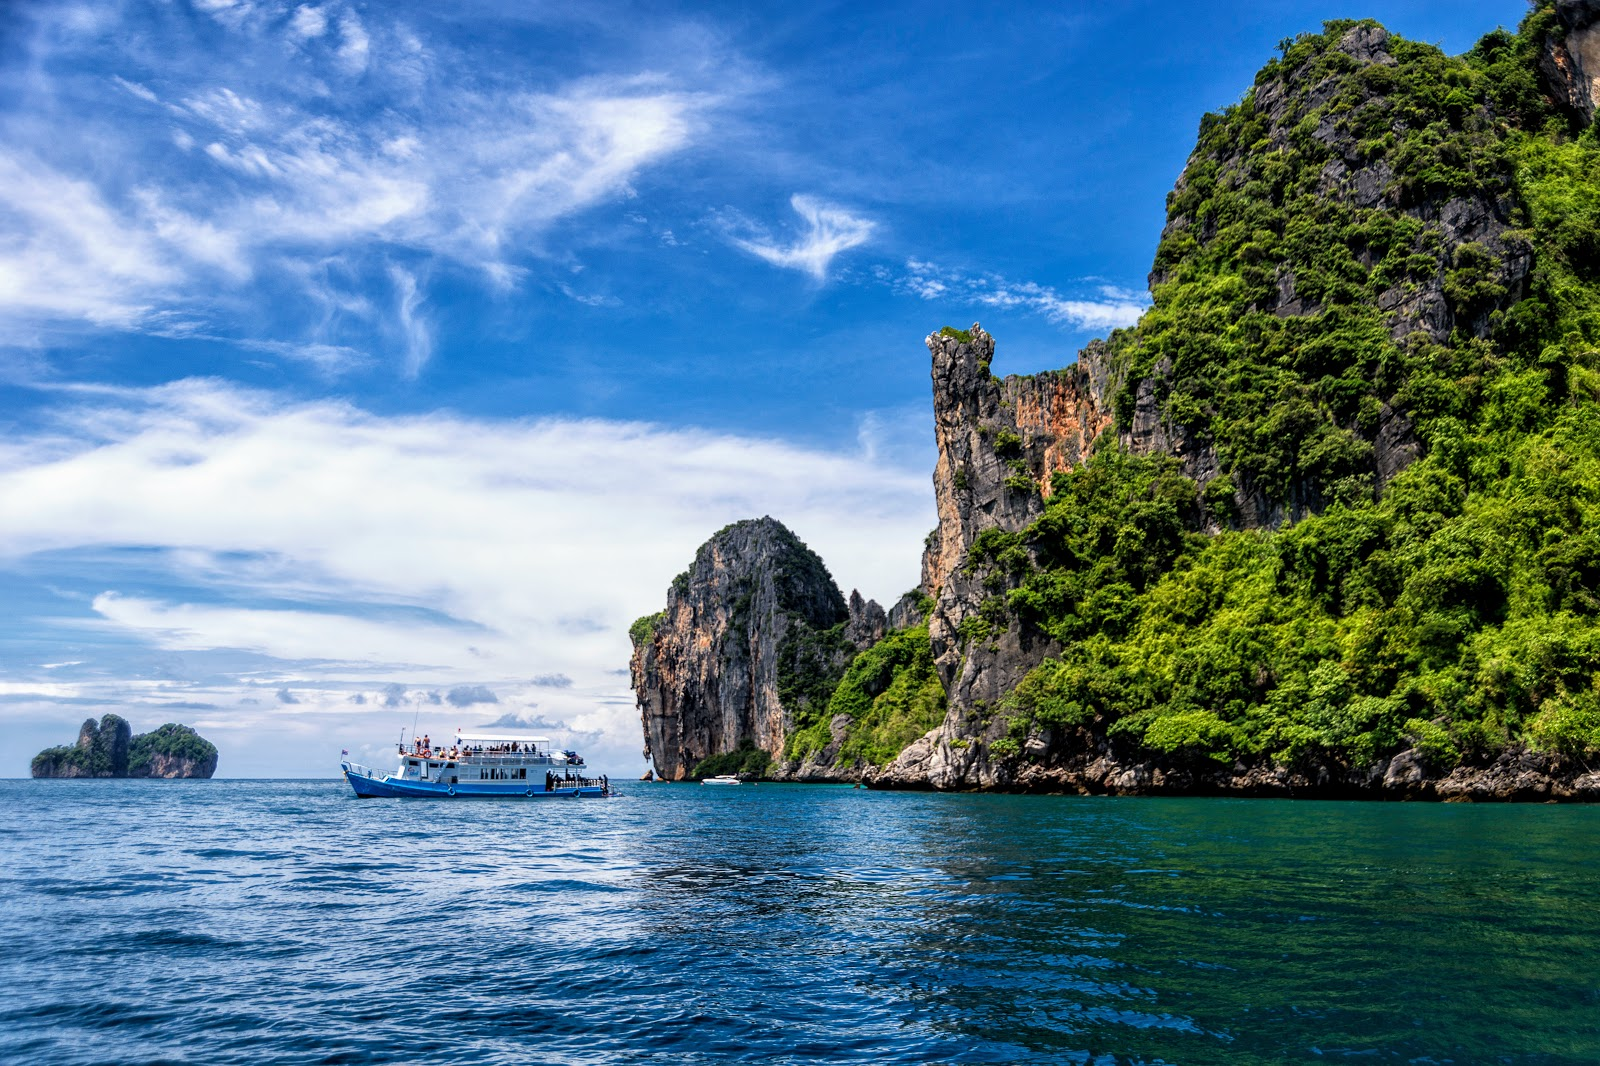 Which Five Words Would You Choose to Best Describe Thailand?